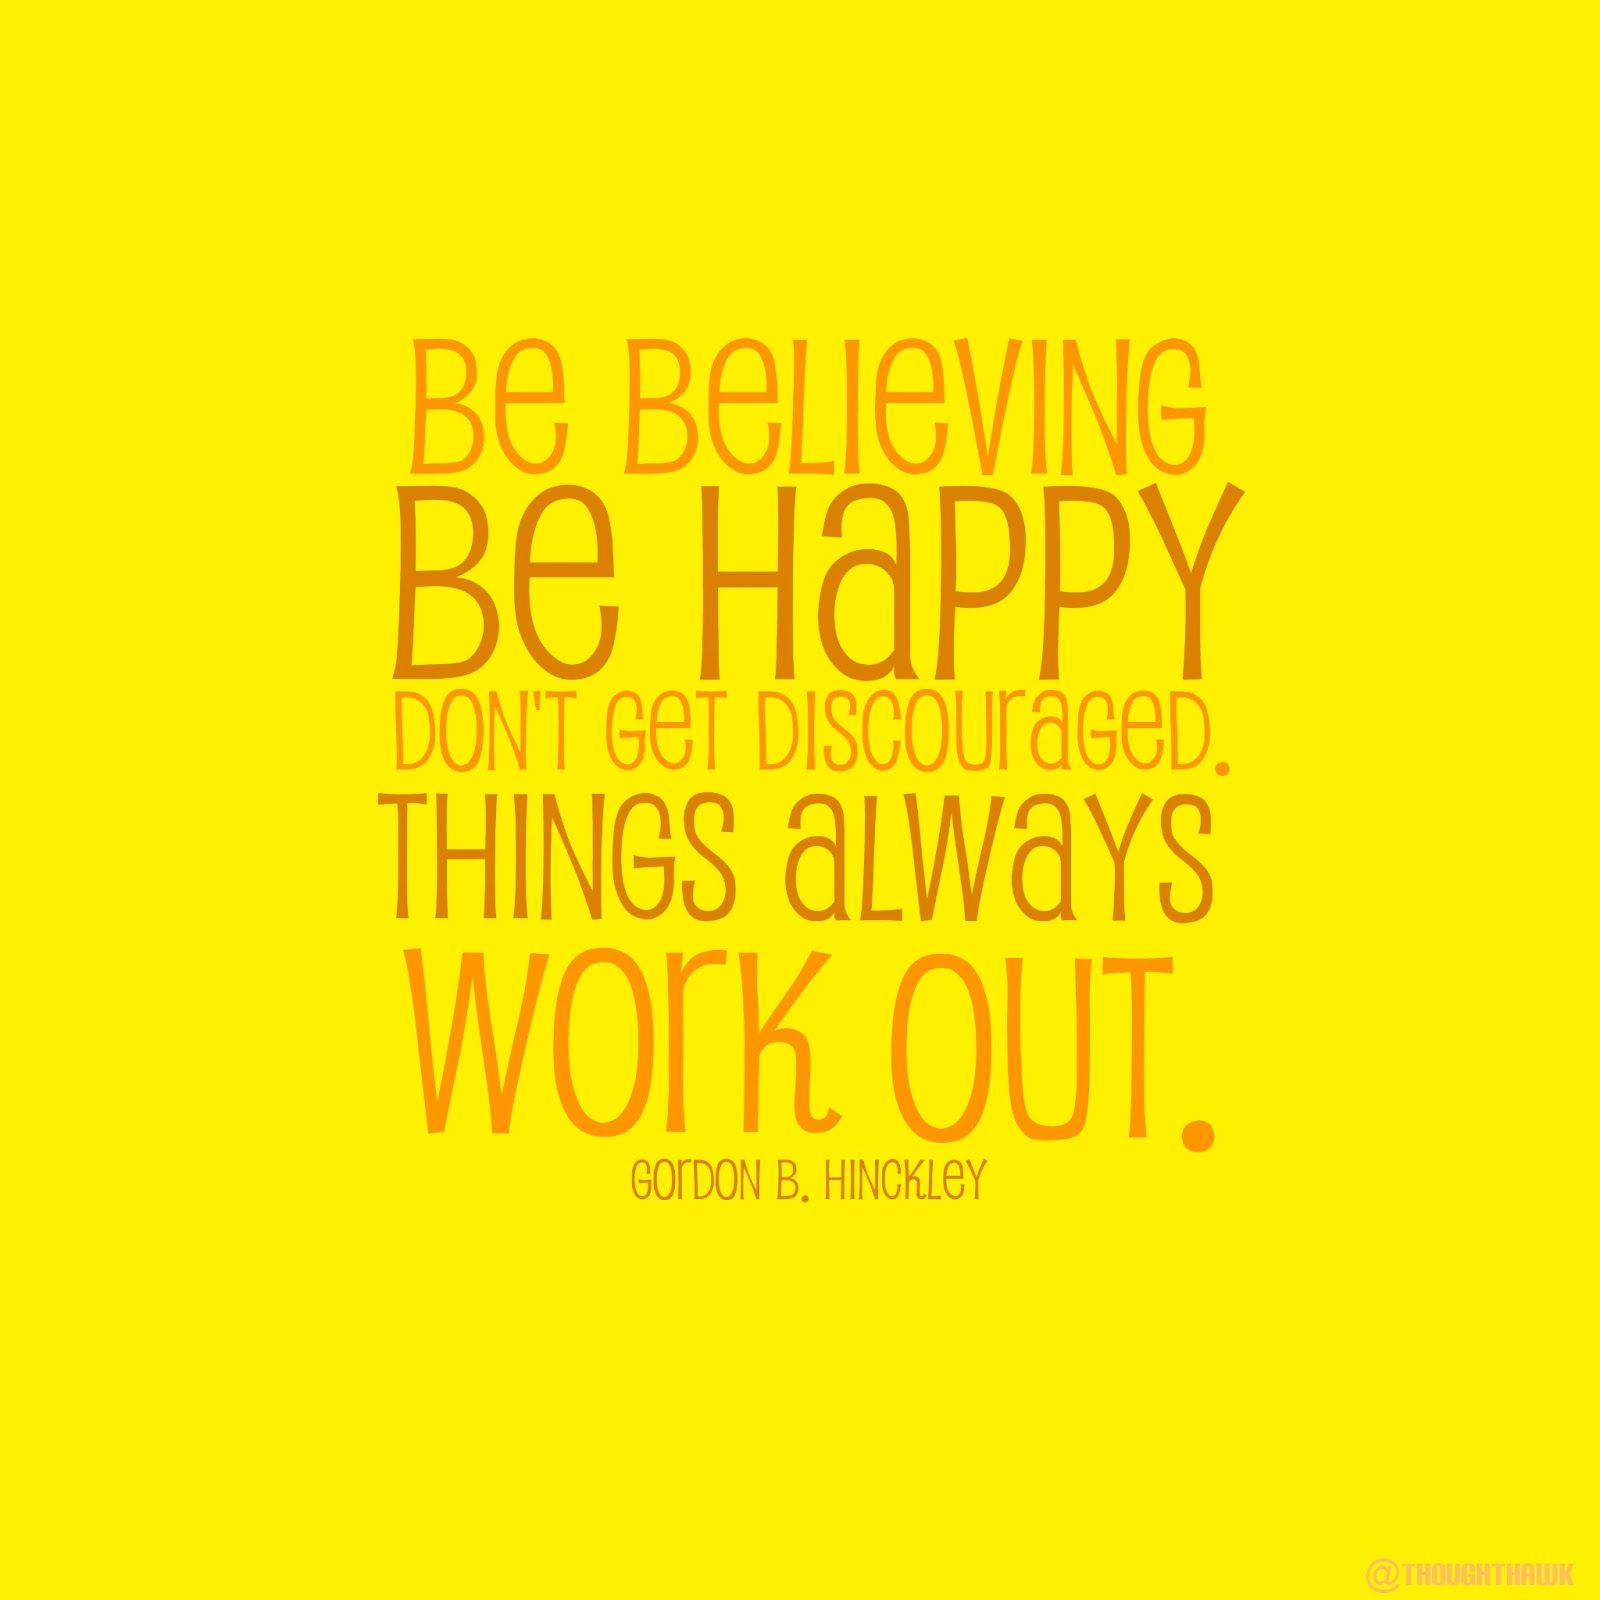 Be Happy Quotes: Be Believing, Be Happy, Don't Get Discouraged. Things